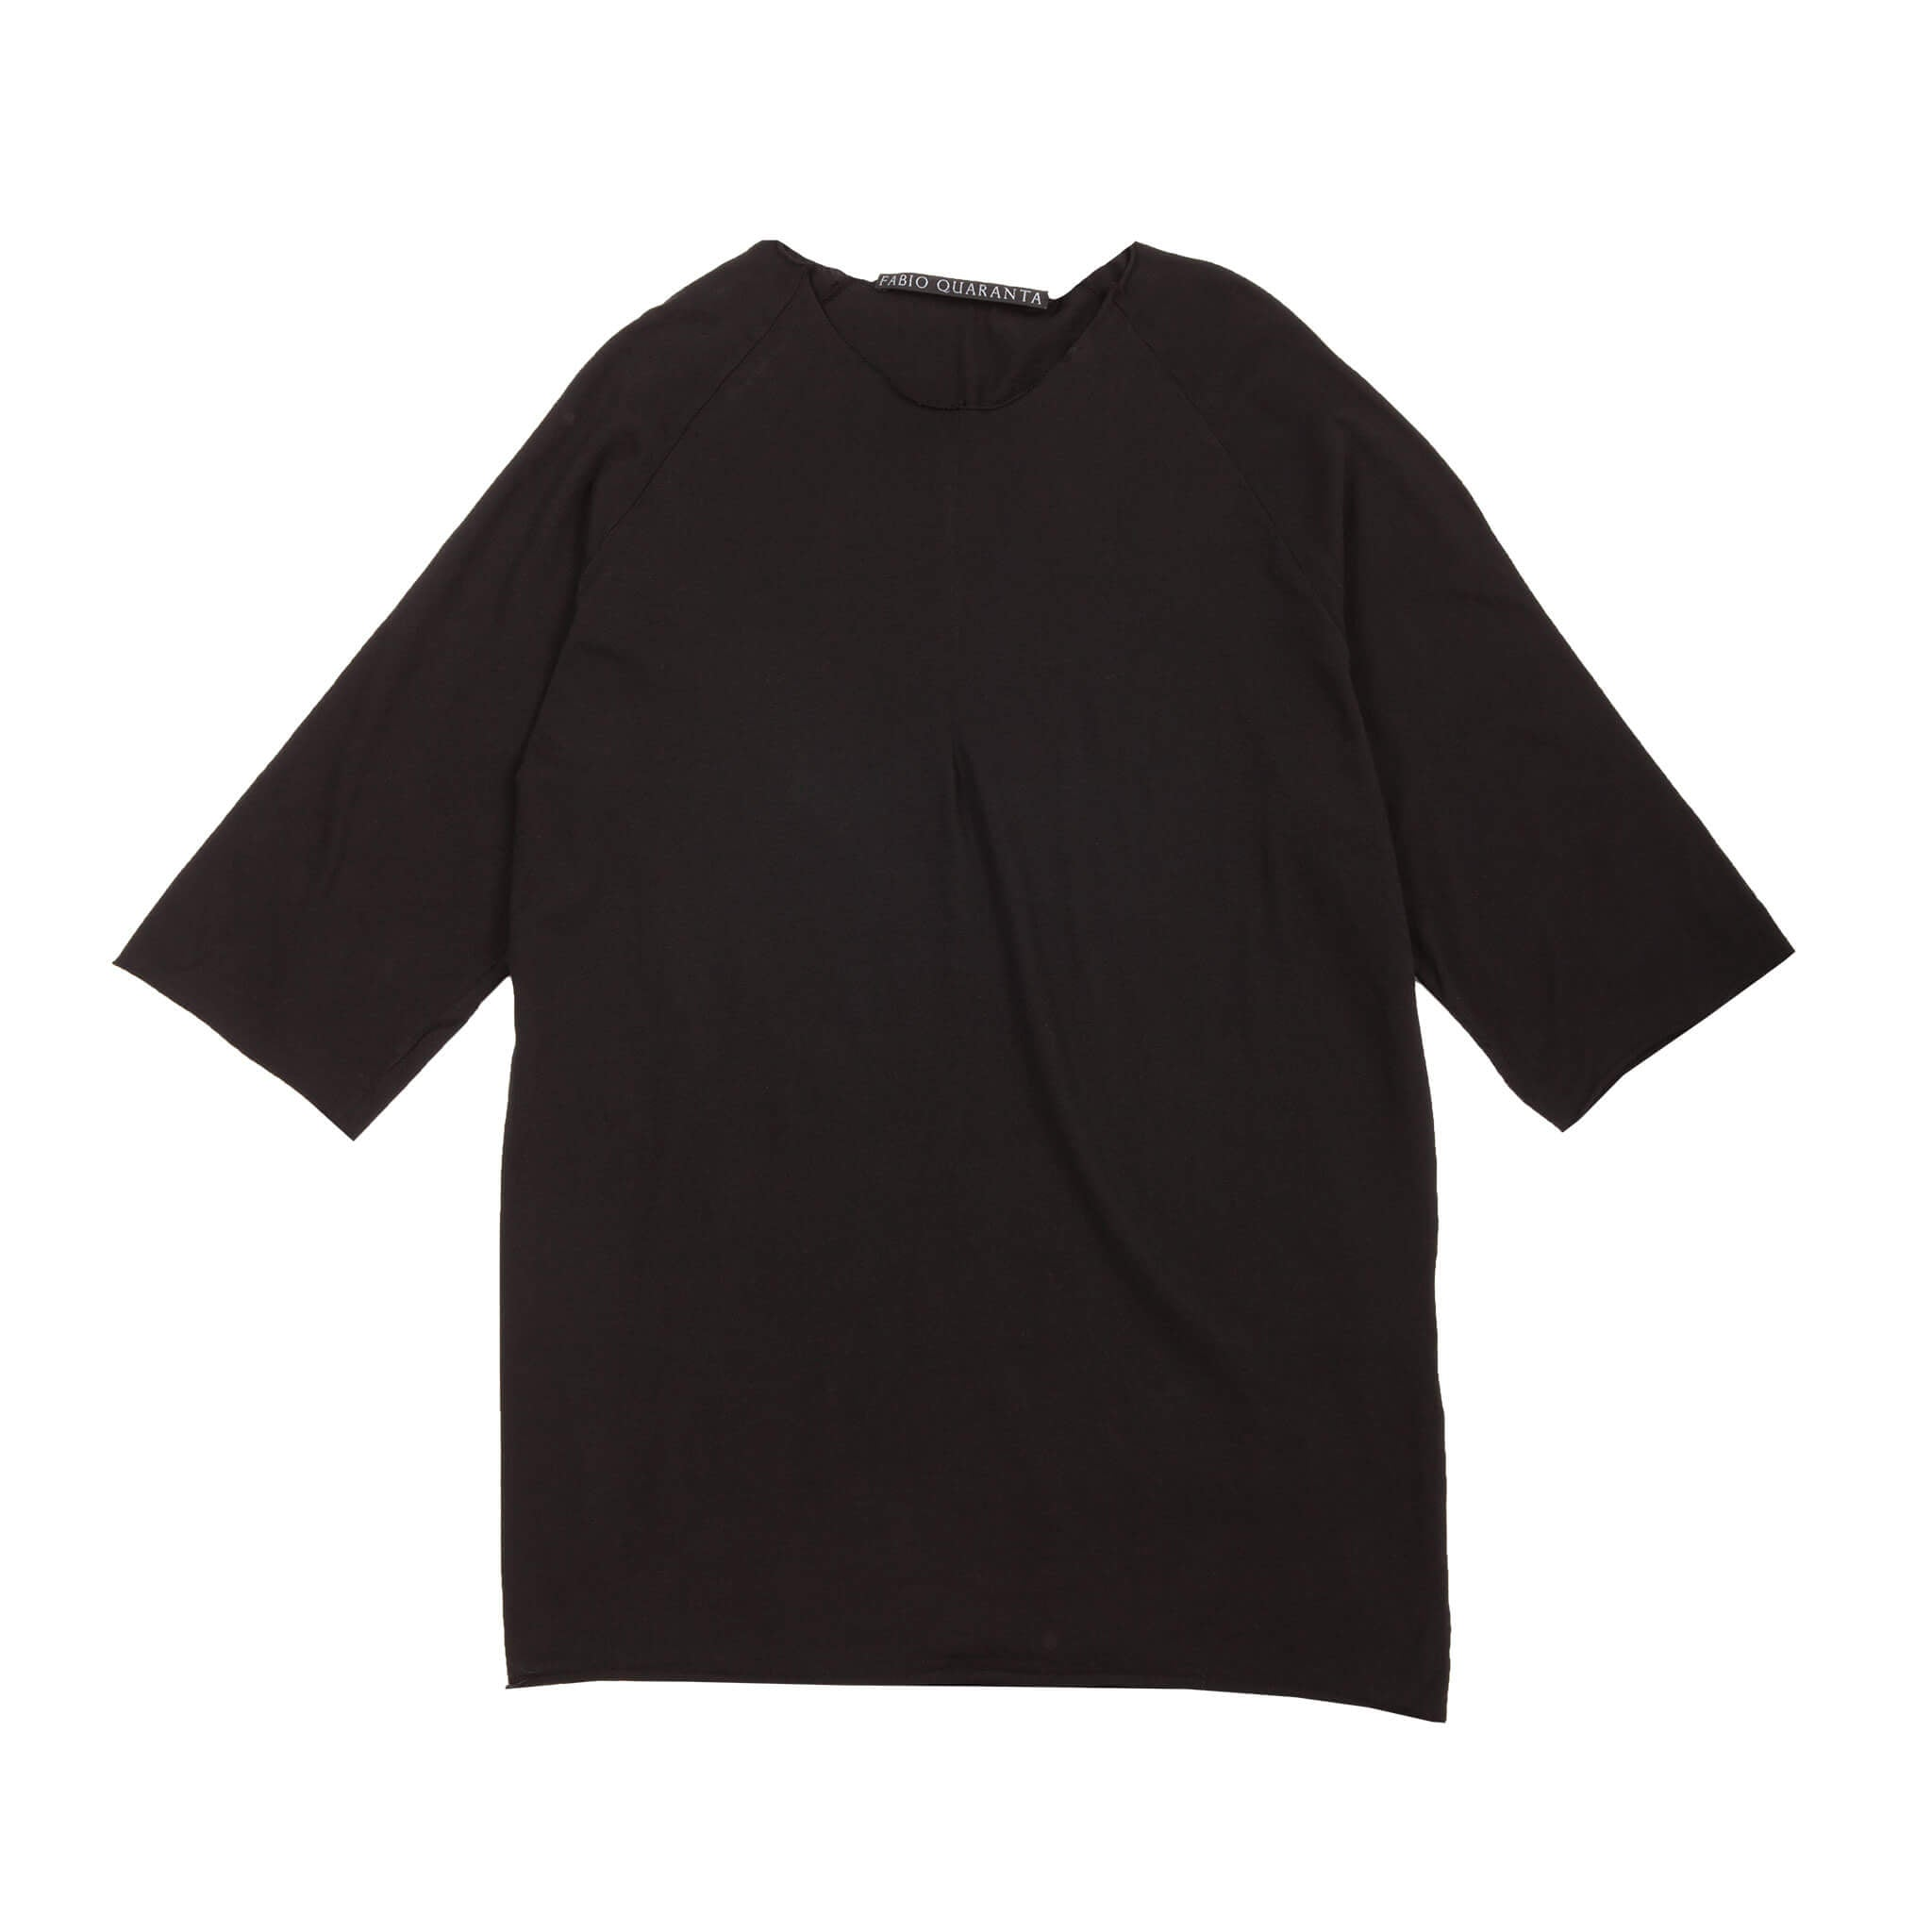 GARMENT-DYED RAGLAN T-SHIRT